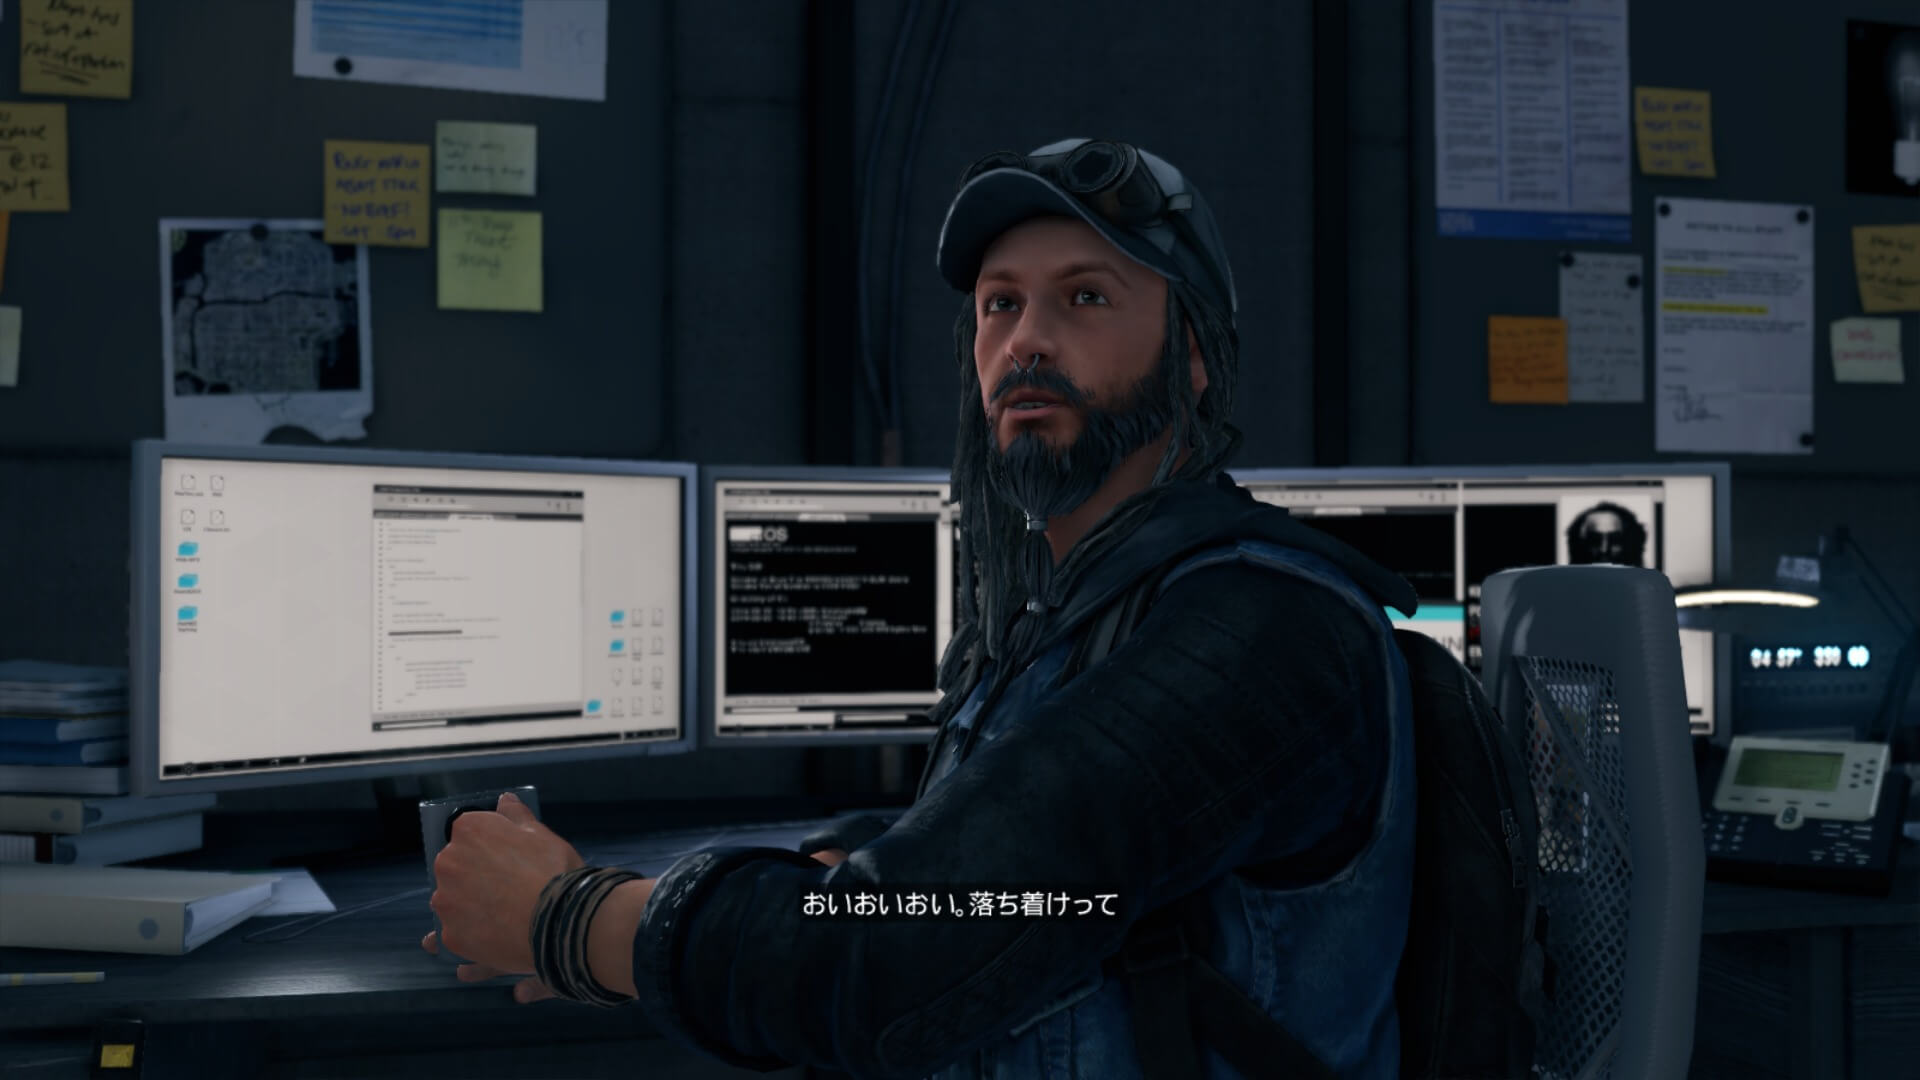 WATCH_DOGS™_20140925101231